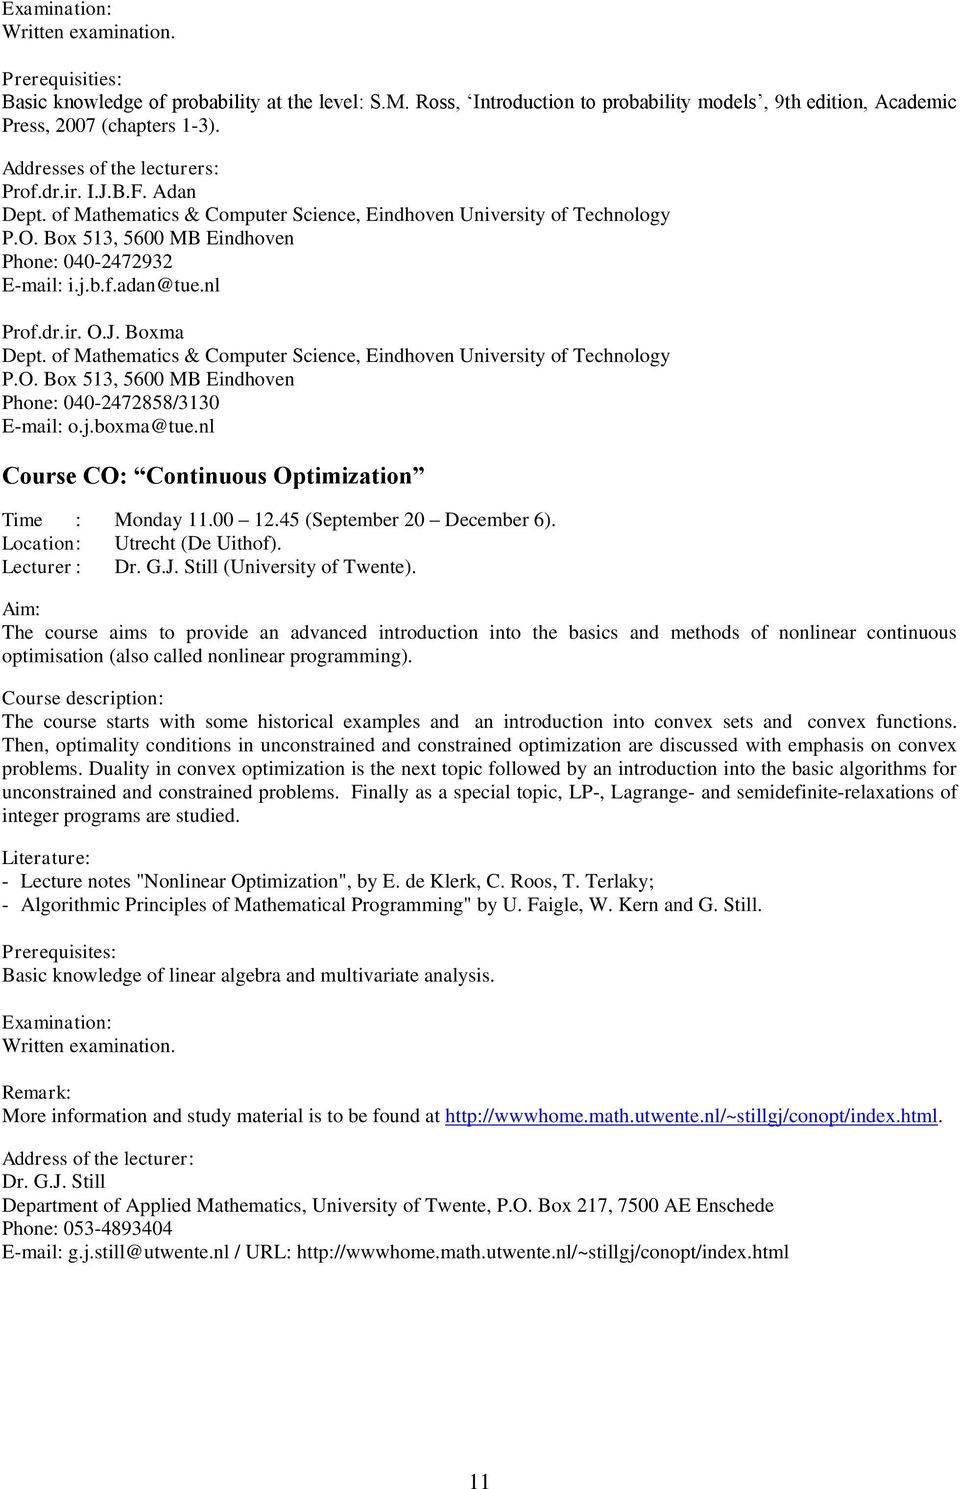 nl Prof.dr.ir. O.J. Boxma Dept. of Mathematics & Computer Science, Eindhoven University of Technology P.O. Box 513, 5600 MB Eindhoven Phone: 040-2472858/3130 E-mail: o.j.boxma@tue.